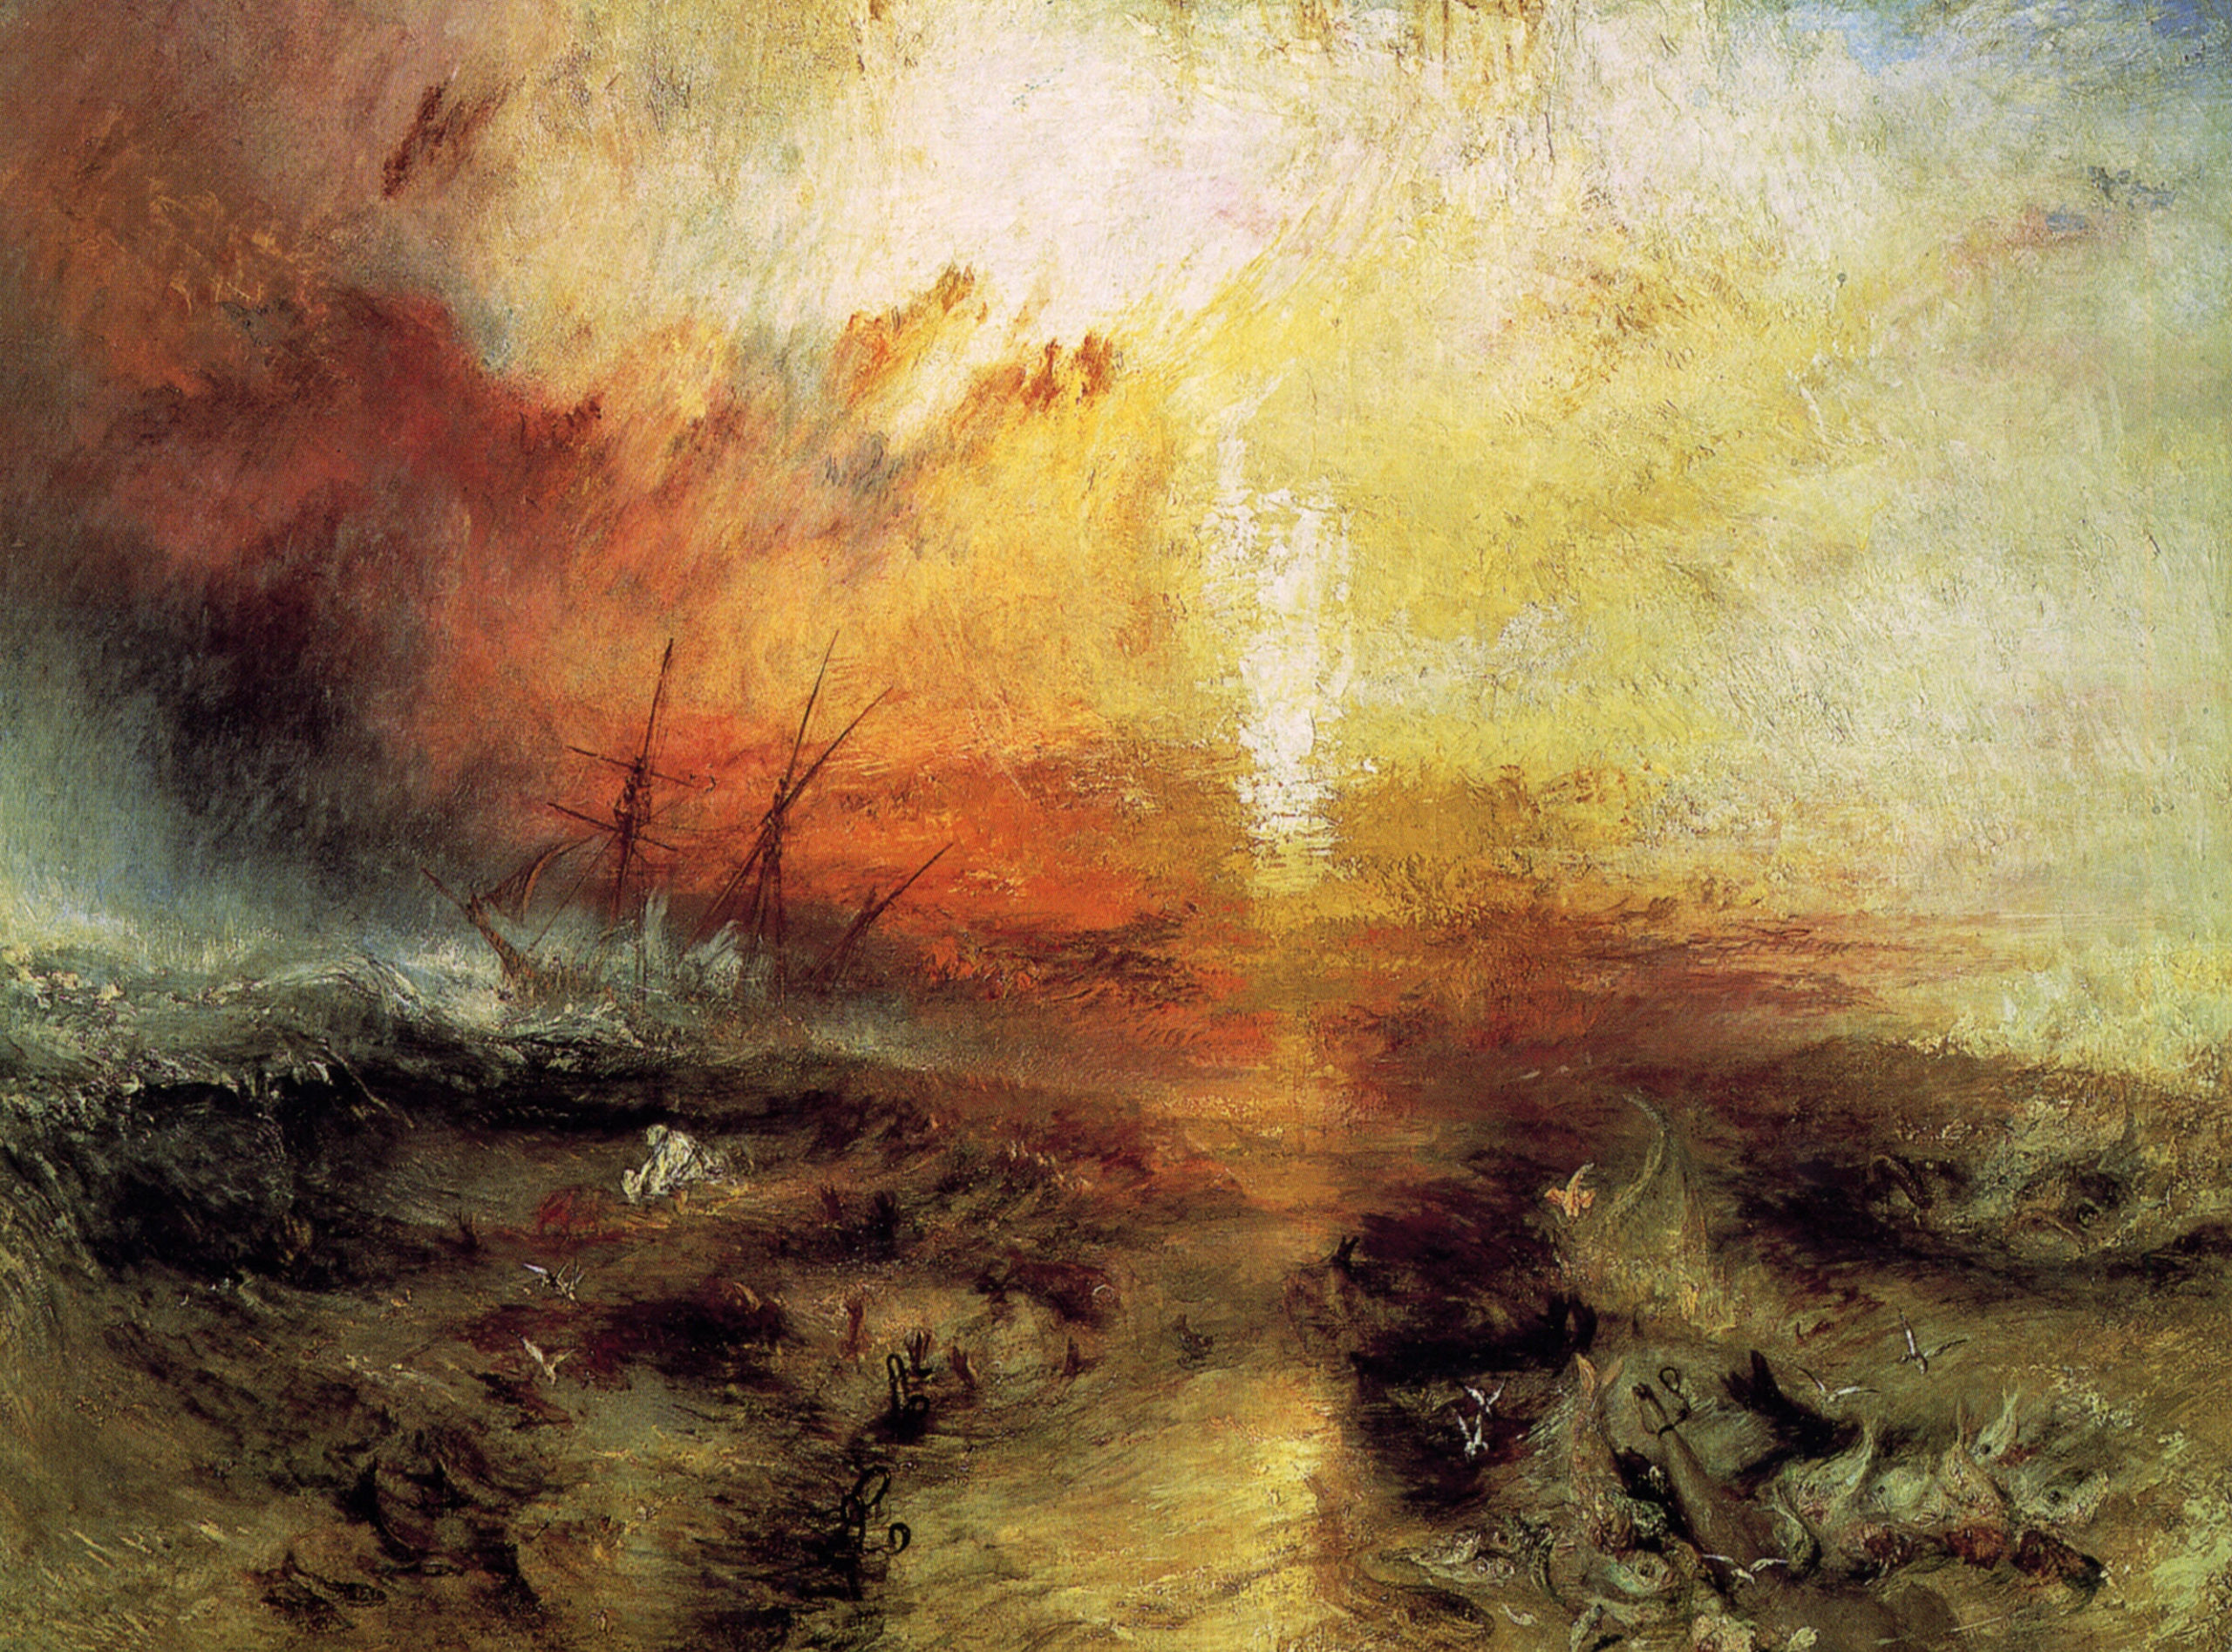 The Slave Ship, William Turner